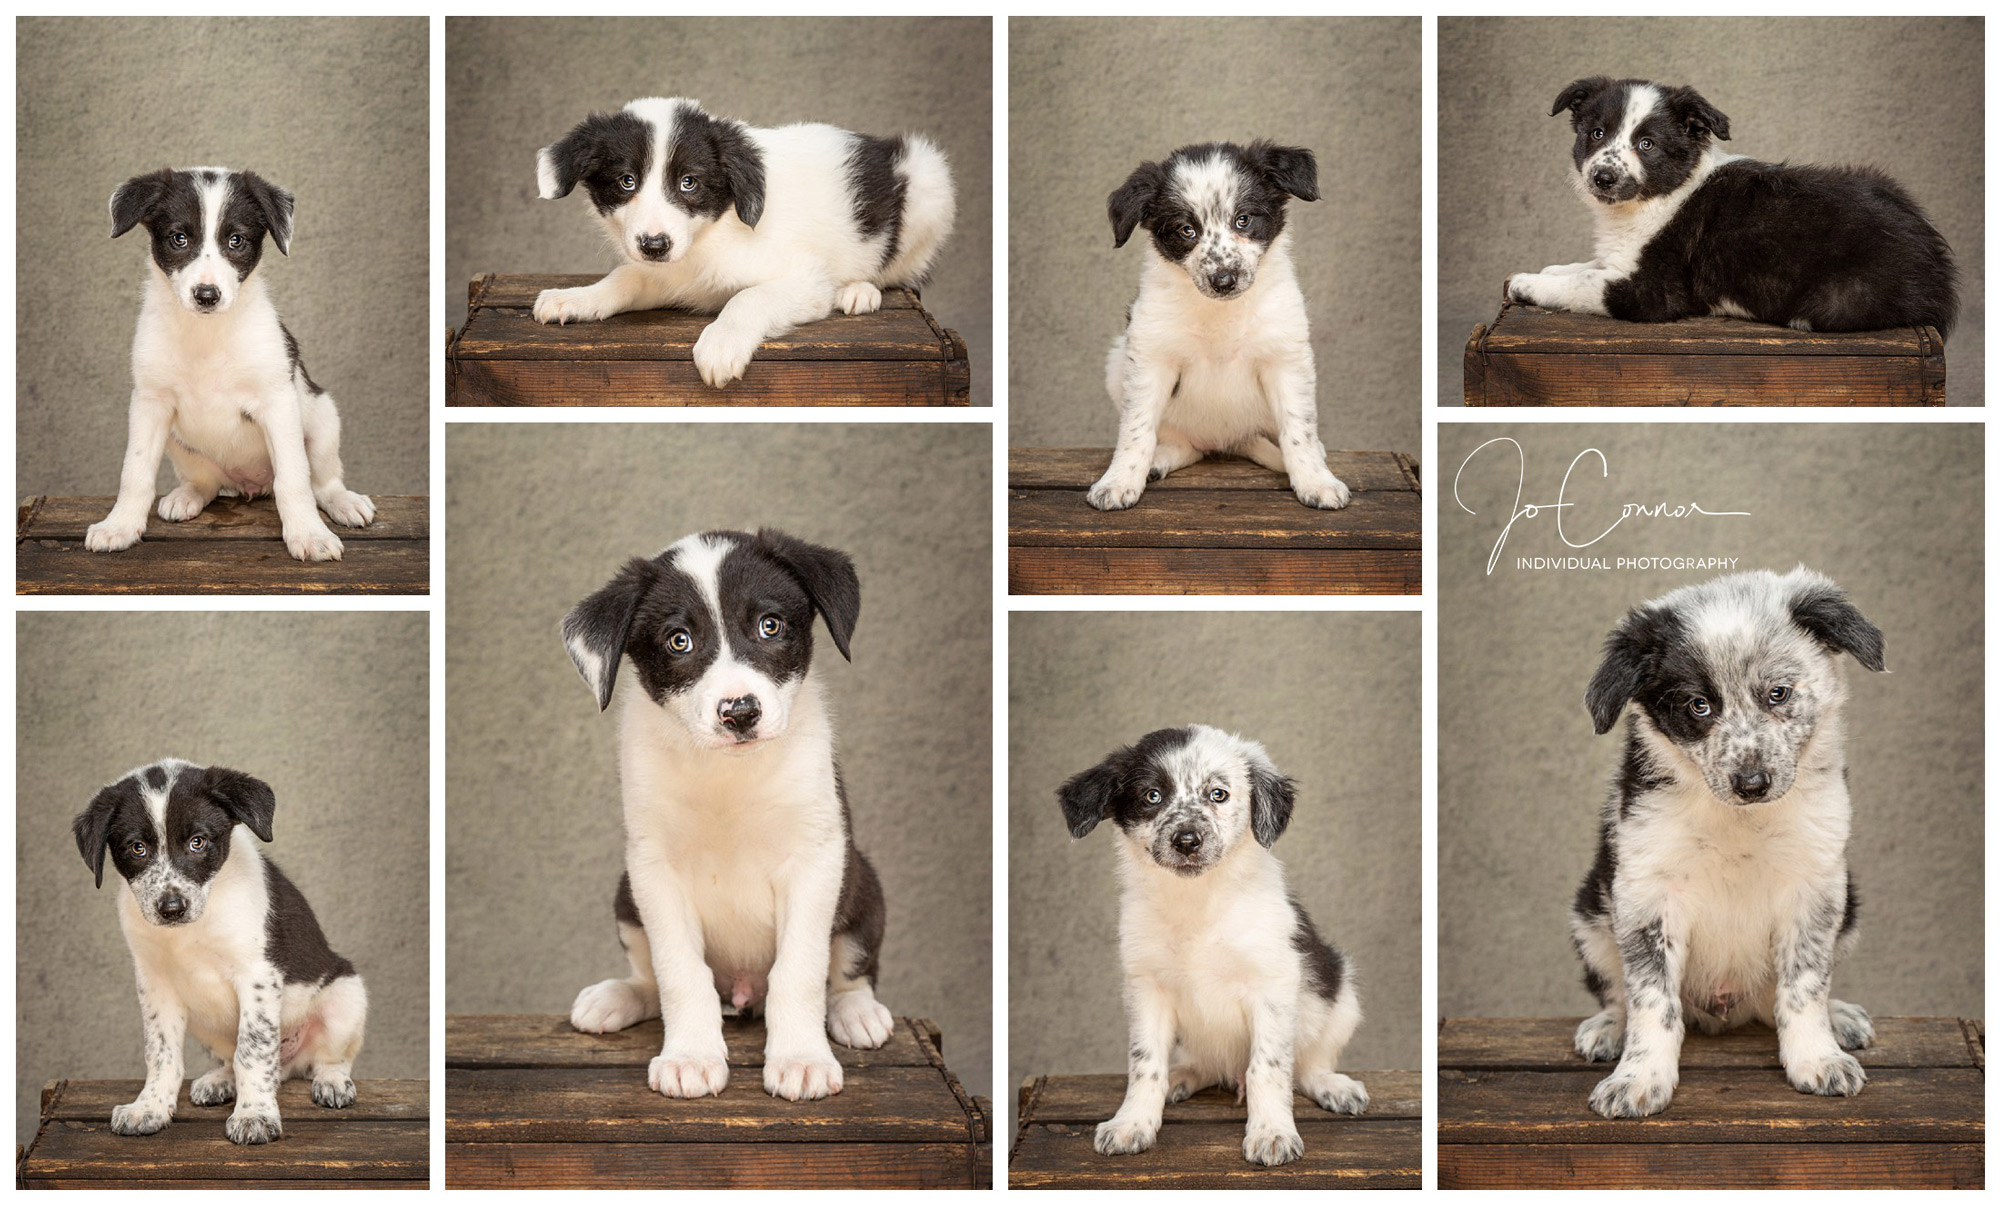 Eight collie cross puppies from the same litter